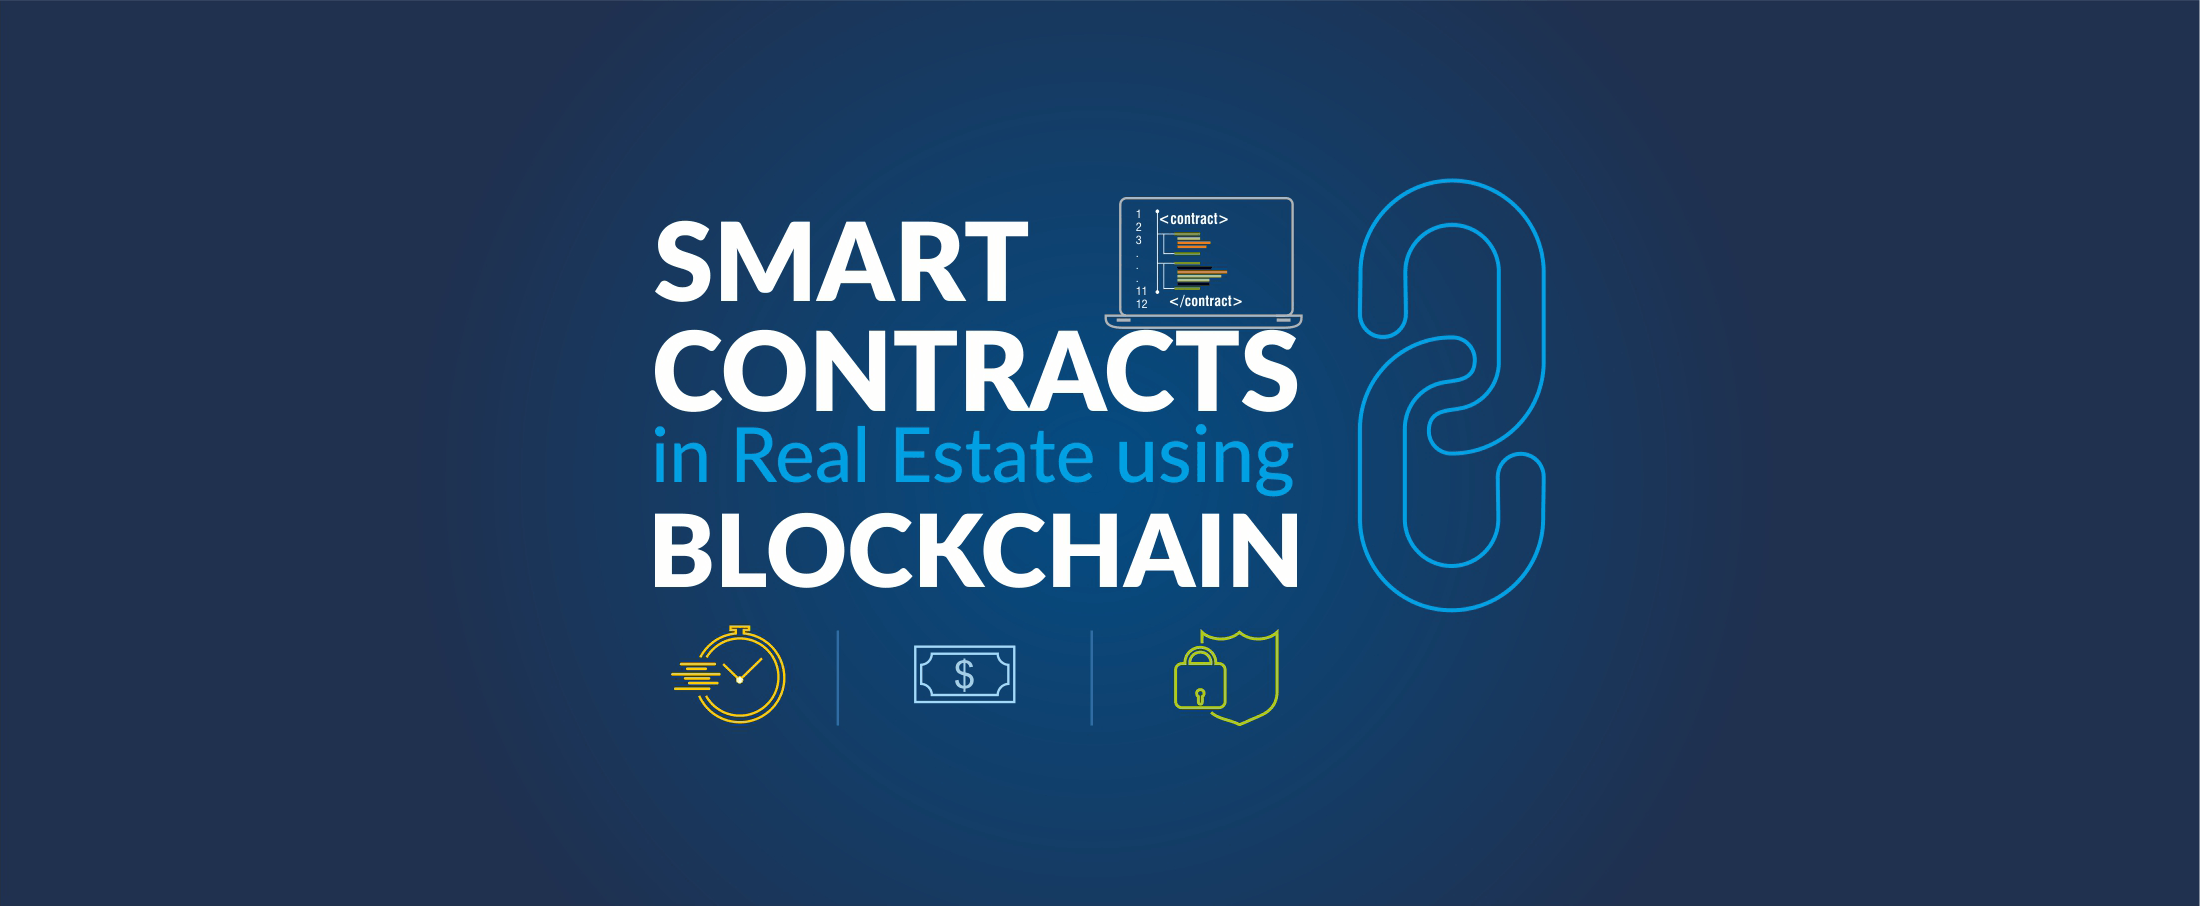 Smart Contracts in Real Estate using Blockchain